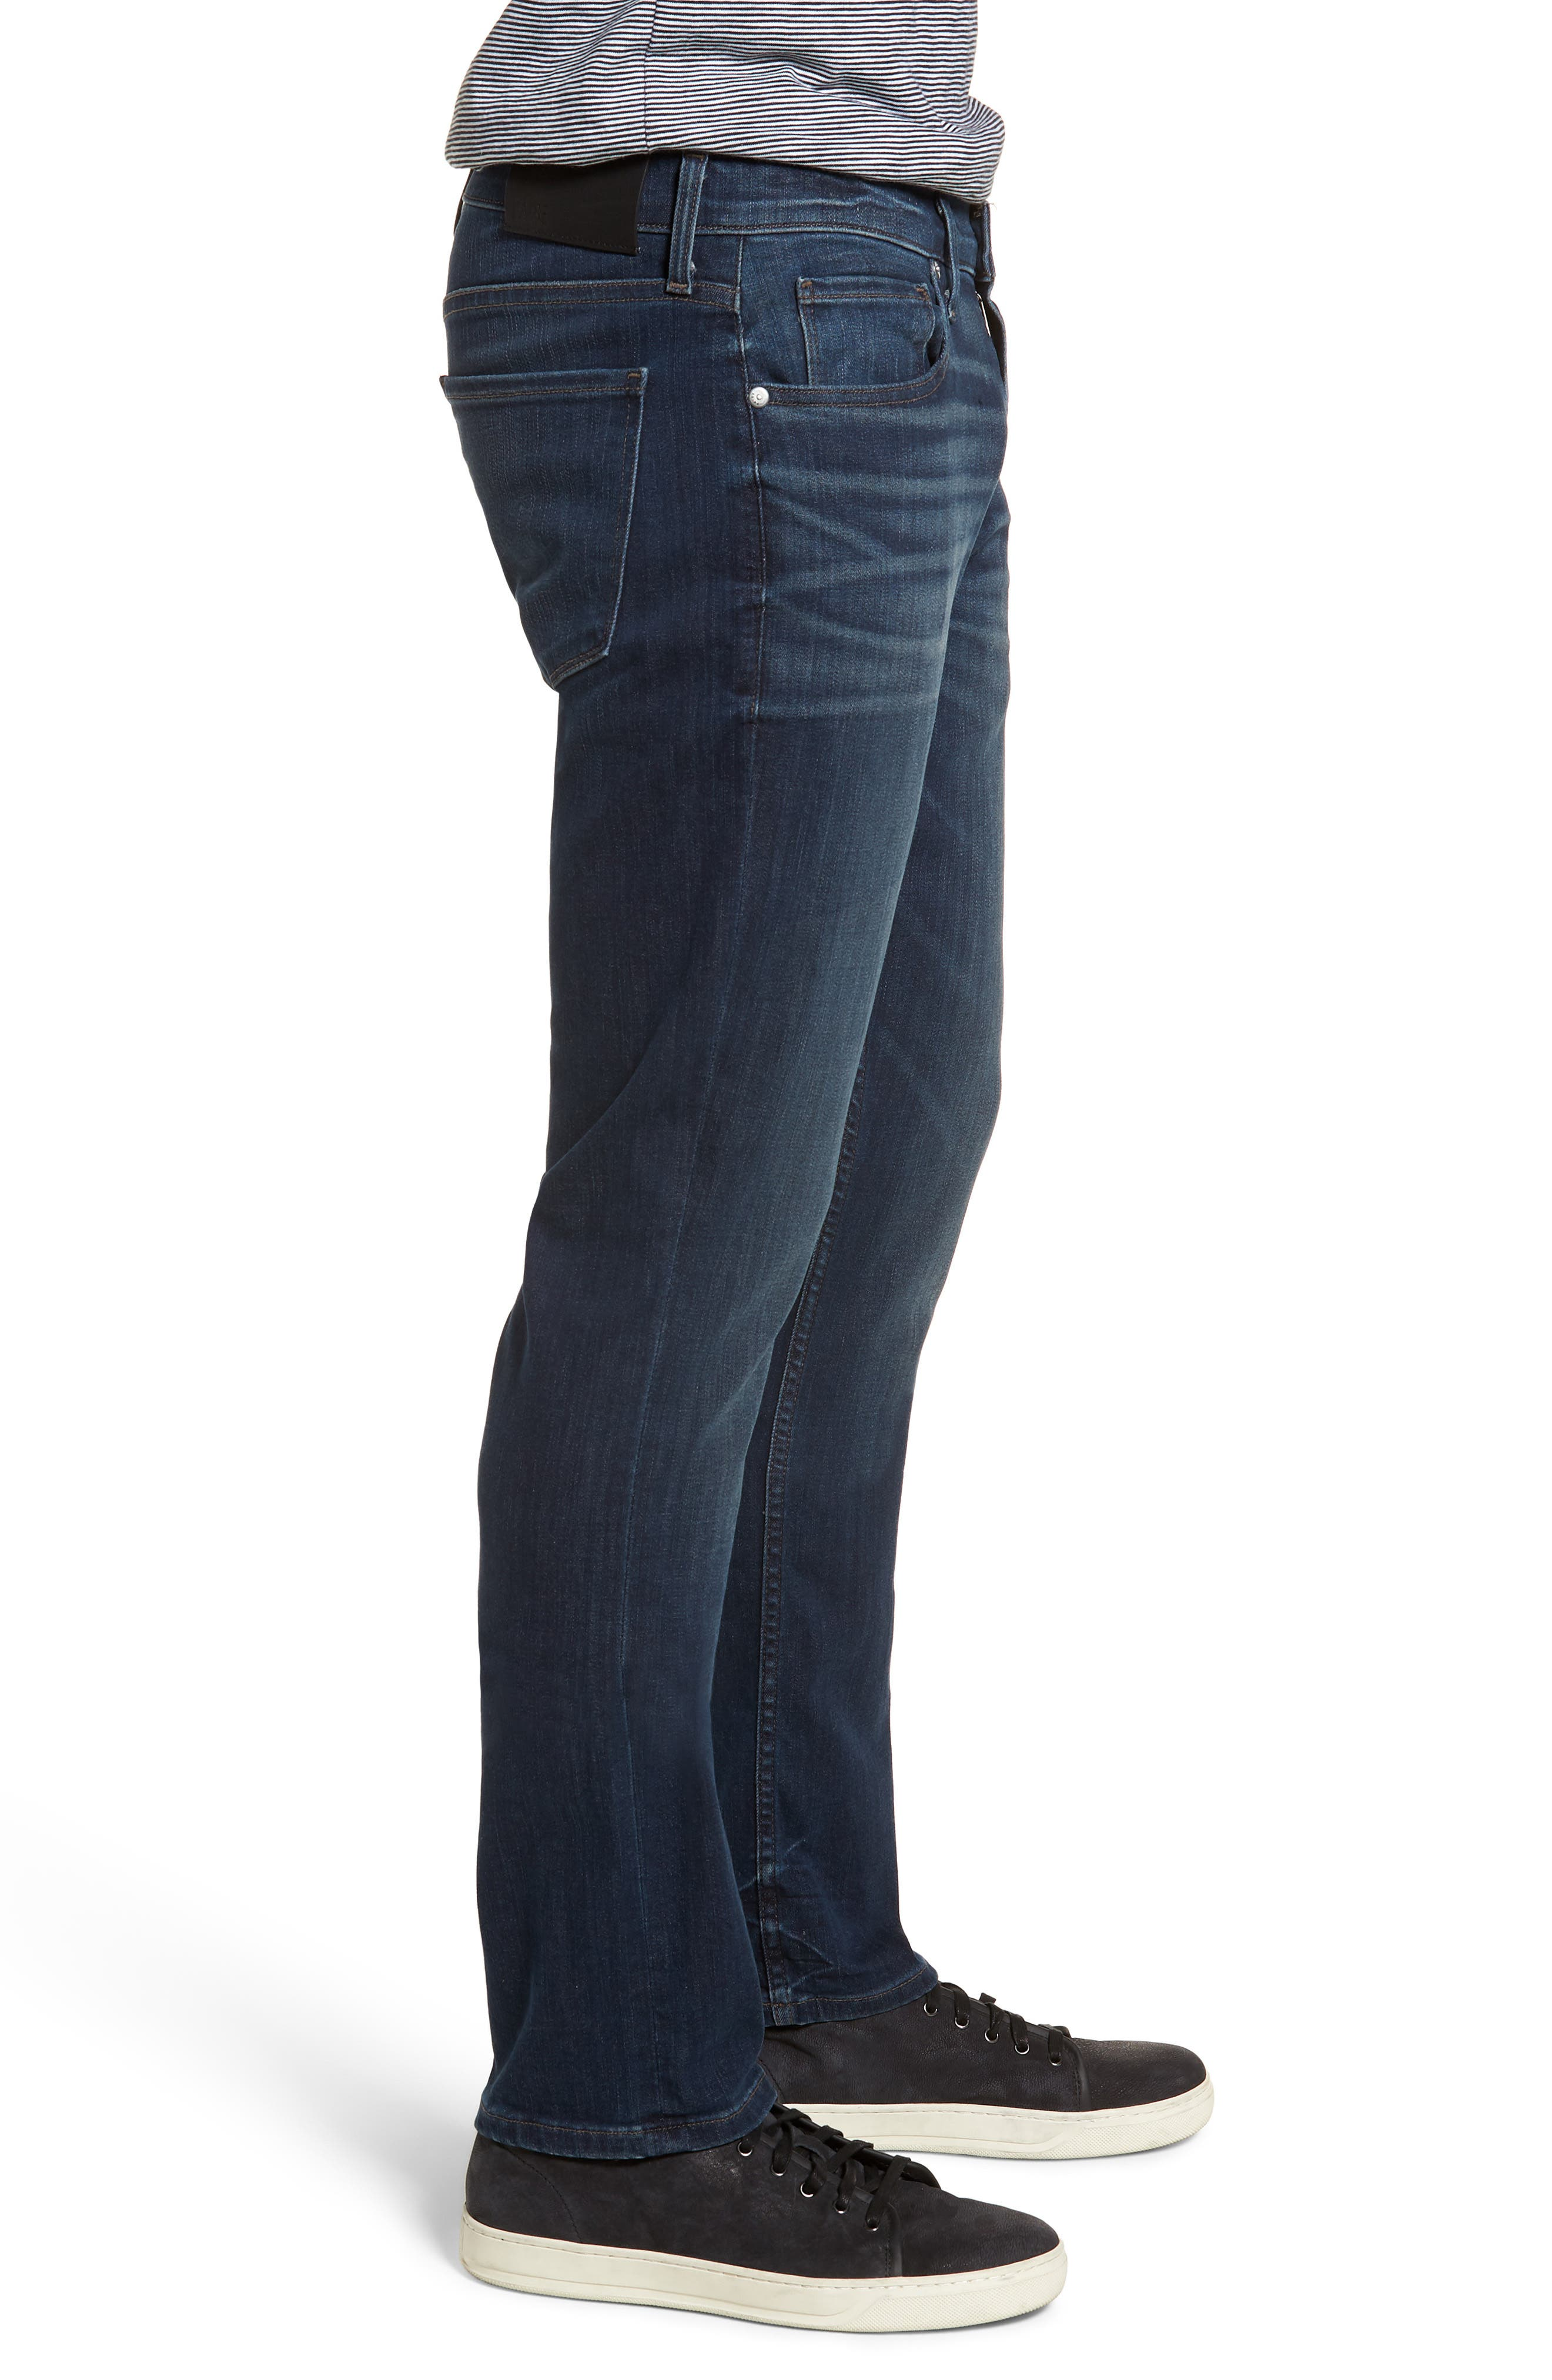 Transcend - Federal Slim Straight Leg Jeans,                             Alternate thumbnail 3, color,                             FREEMAN